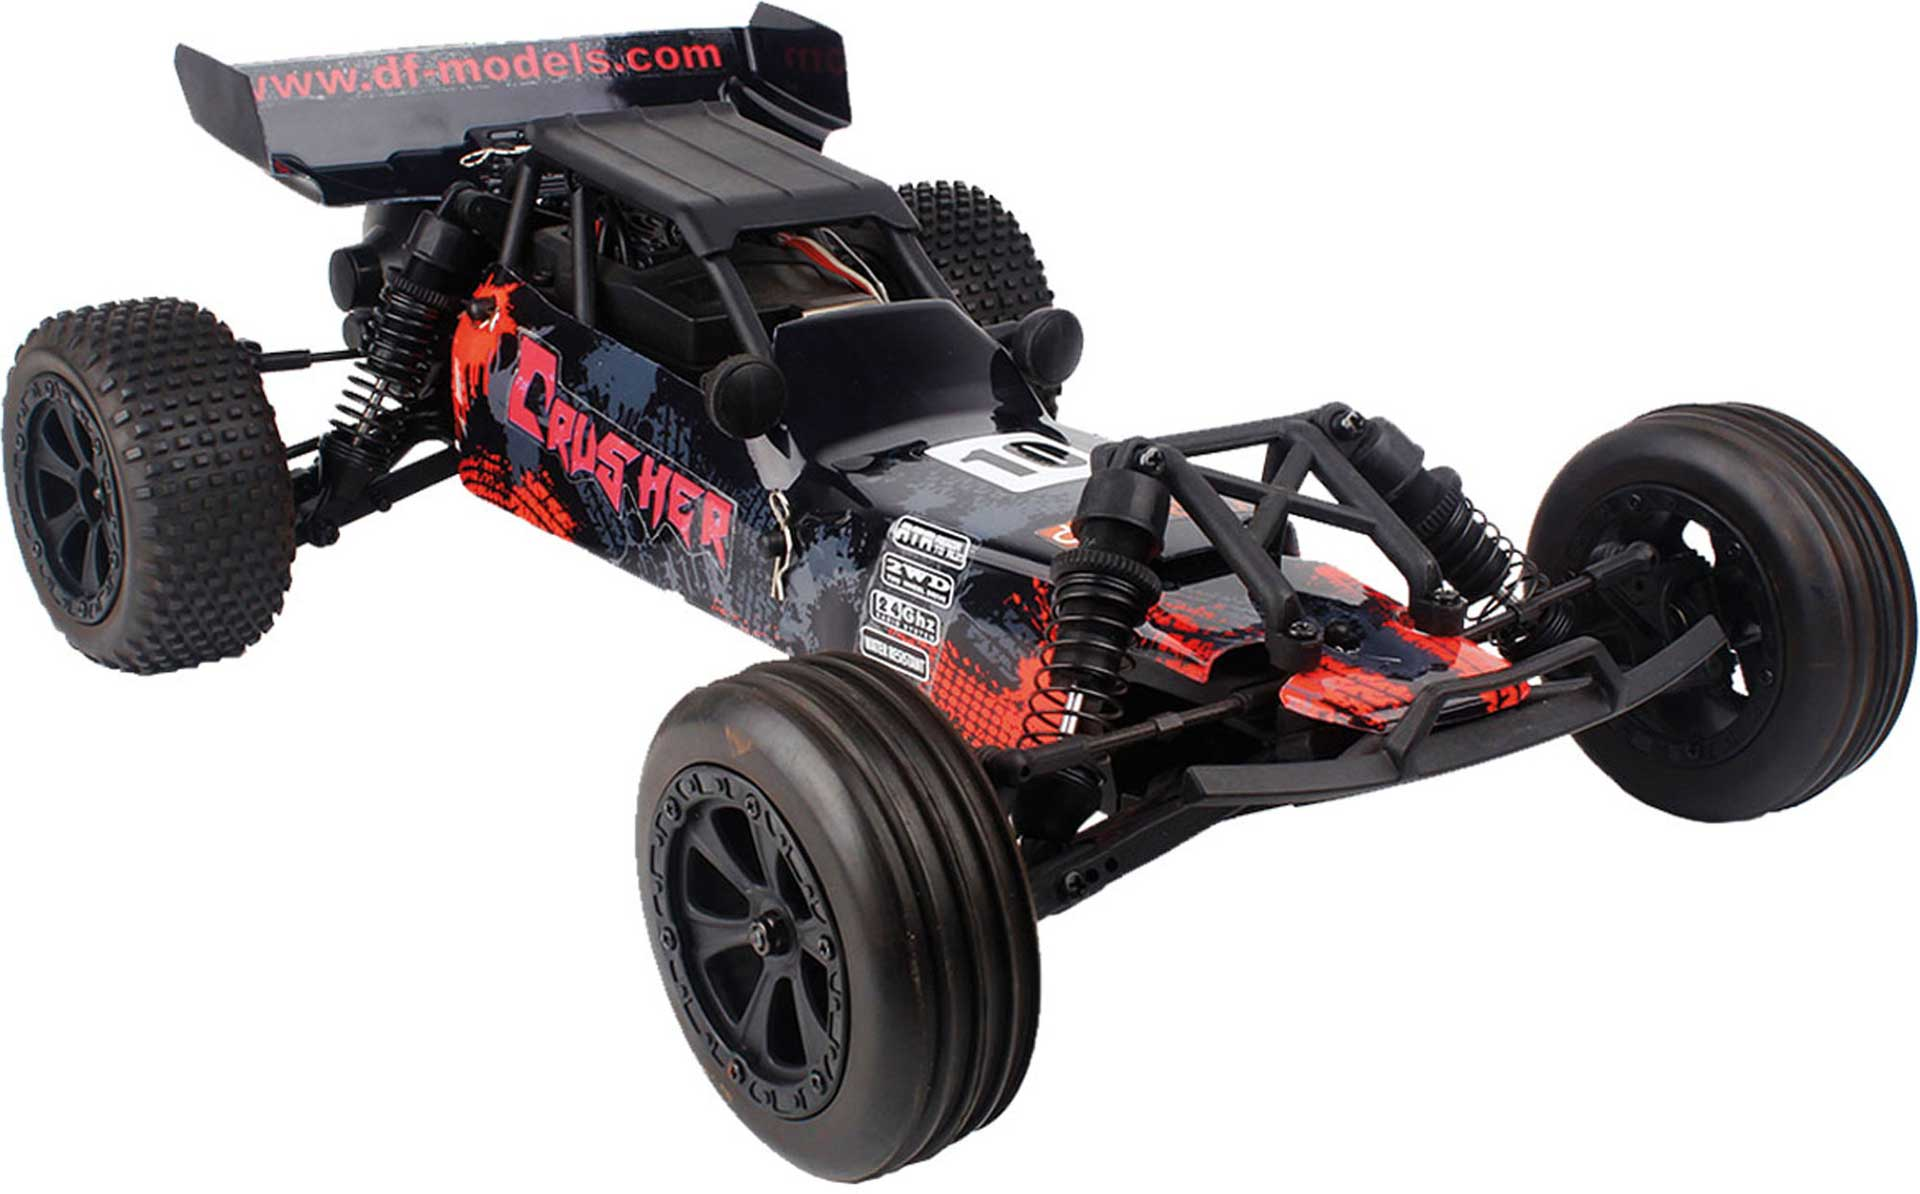 DRIVE & FLY MODELS CRUSHER RACE BUGGY RTR 1/10 2WD EP